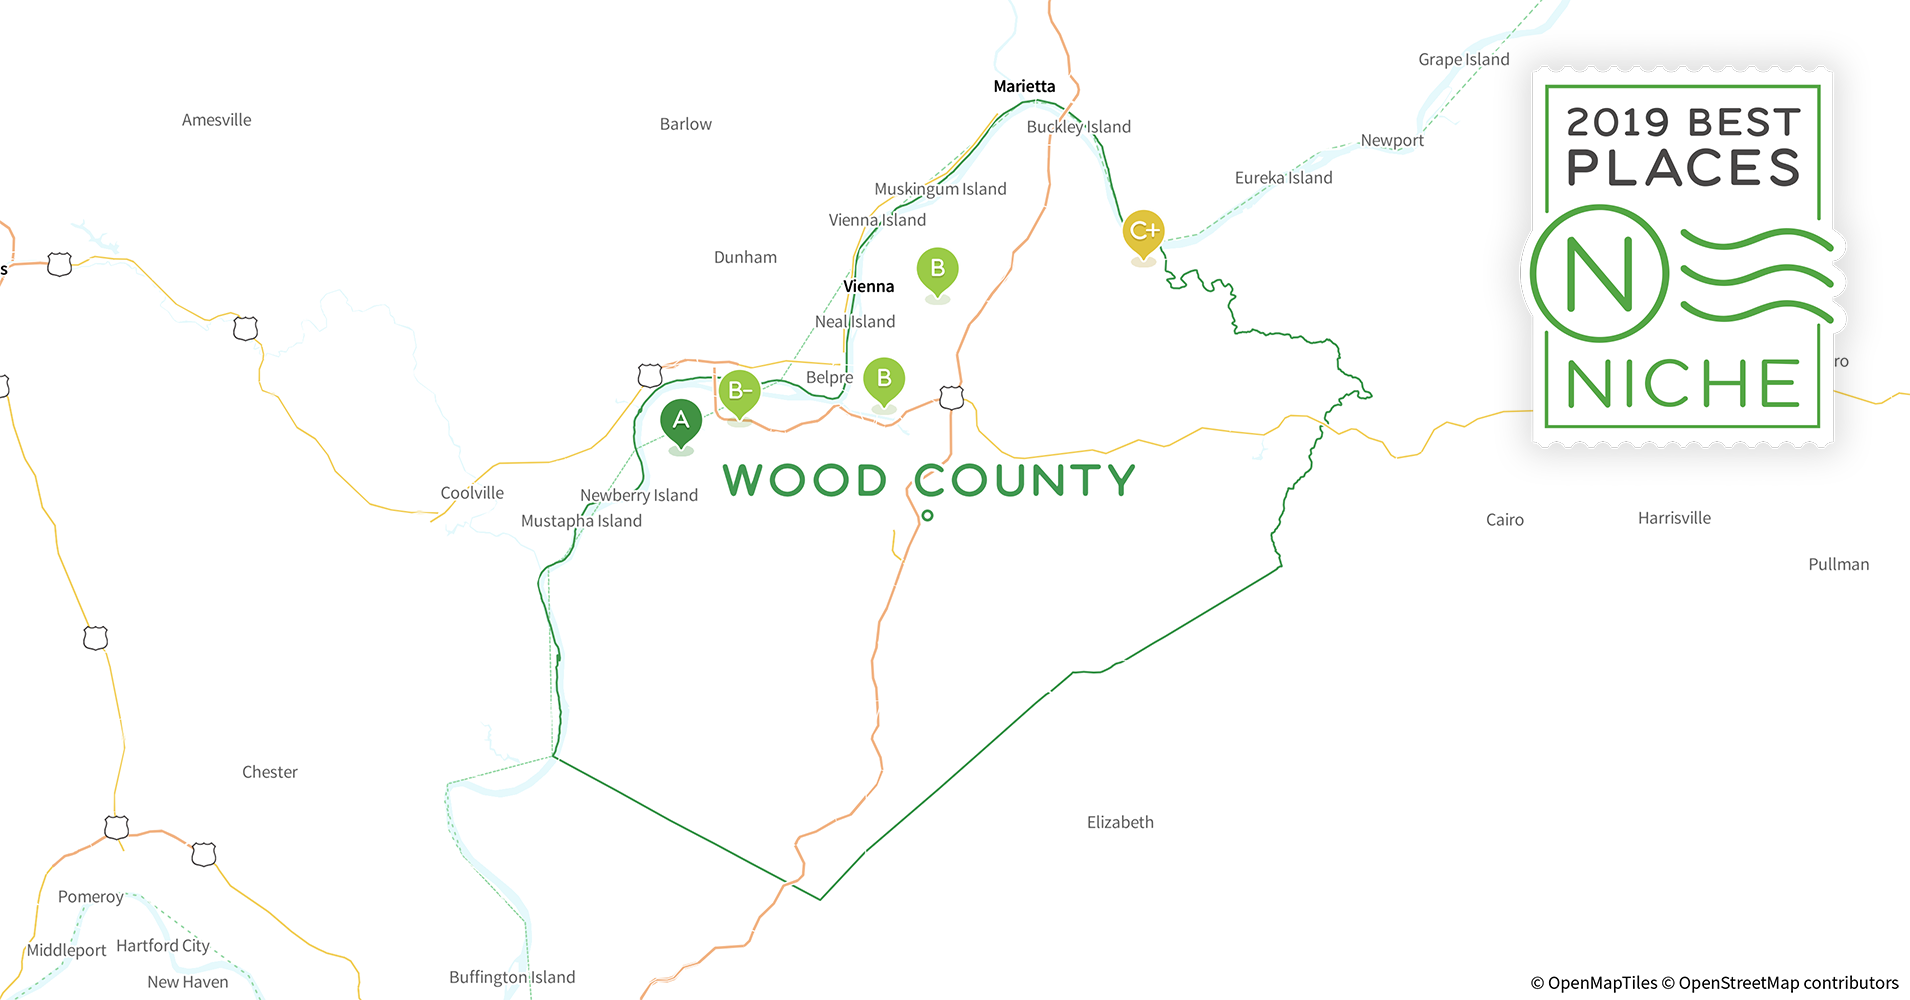 2019 Safe Places to Live in Wood County, WV - Niche